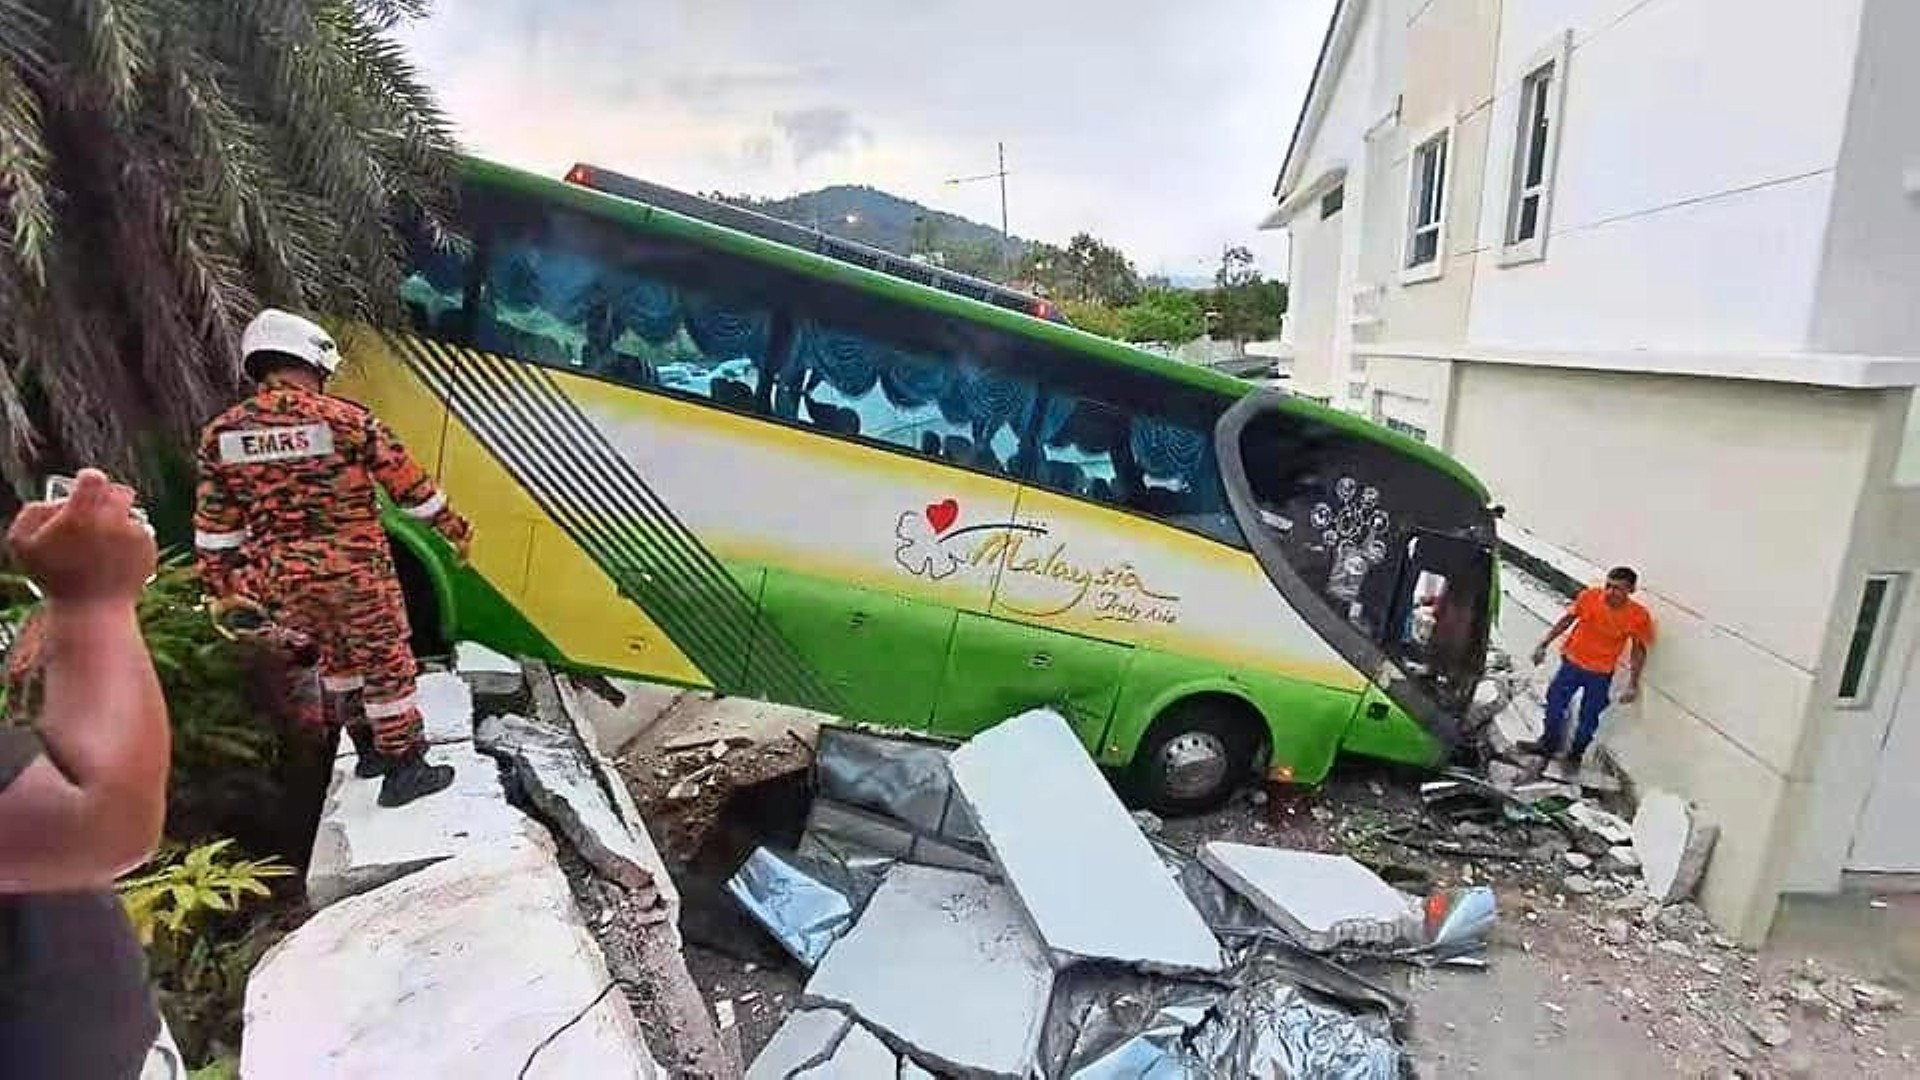 Out of control: A Fire and Rescue Department official checking the accident scene where a bus rammed into several vehicles at the traffic light junction in Jalan Kelicap near Setia Triangle, Bayan Lepas.